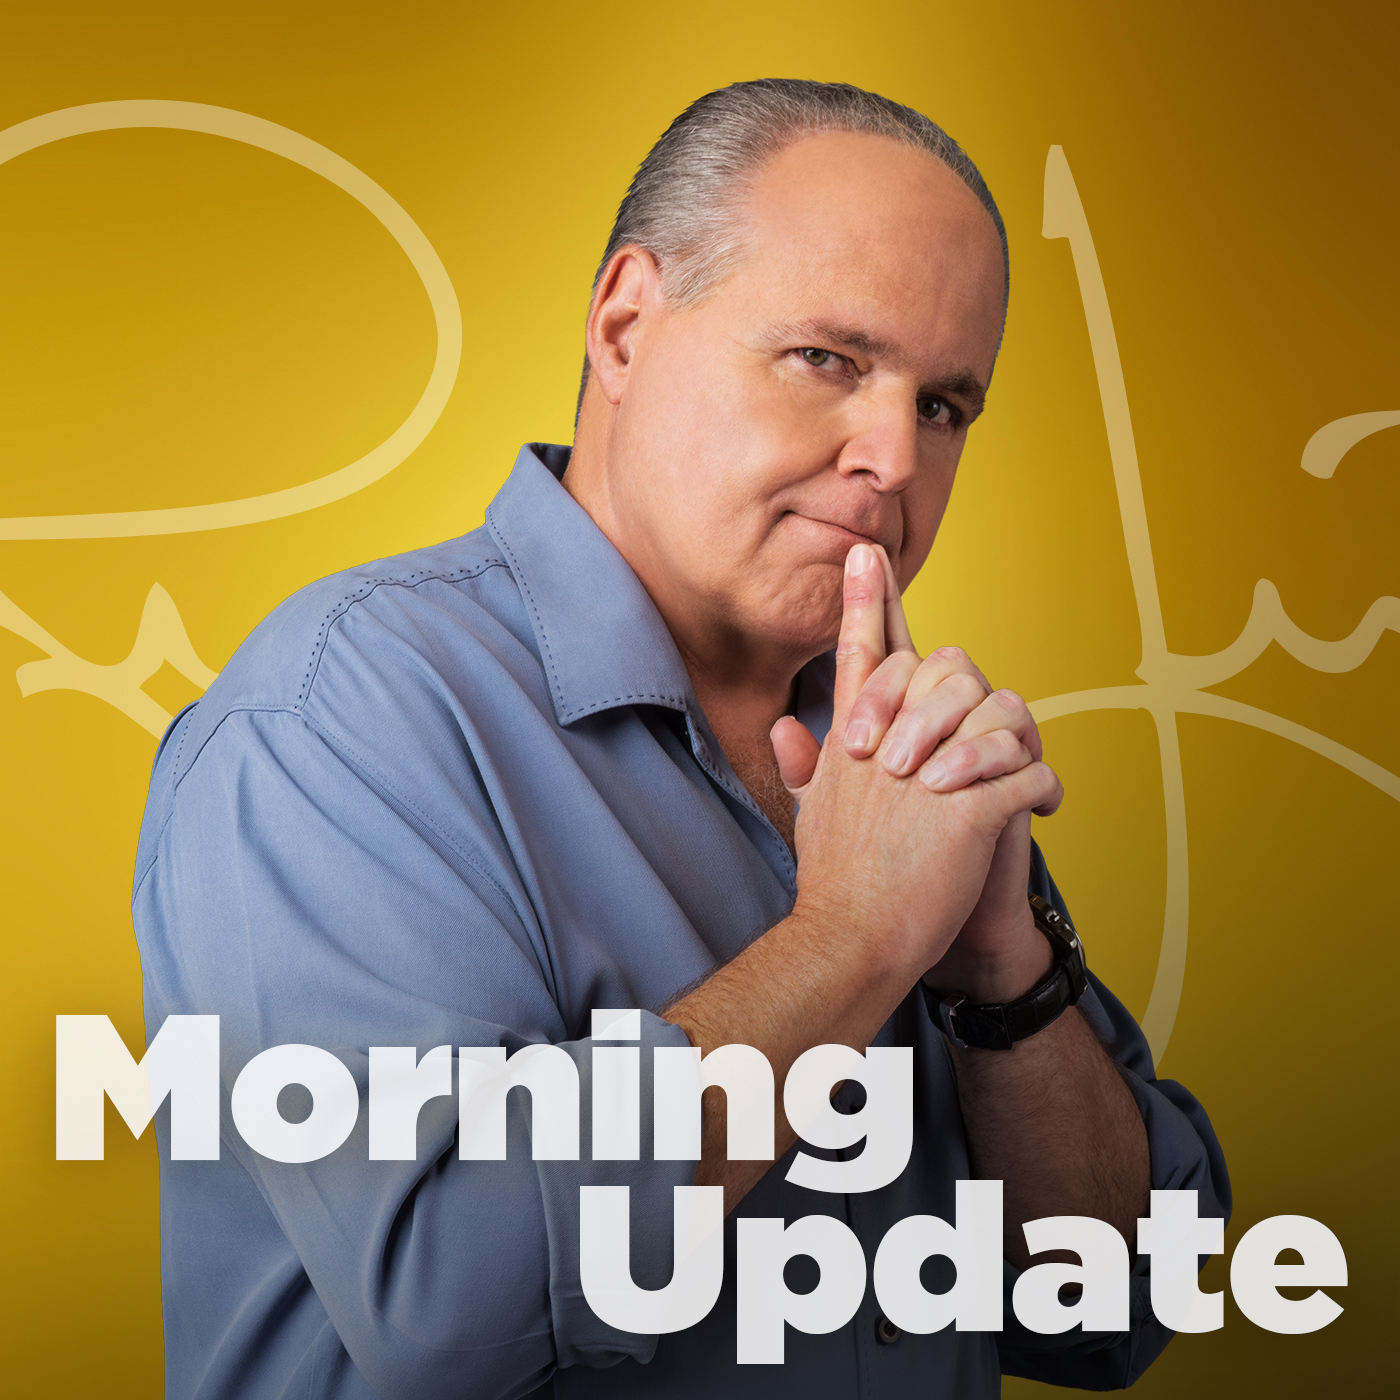 Rush Limbaugh Jan 06, 2020